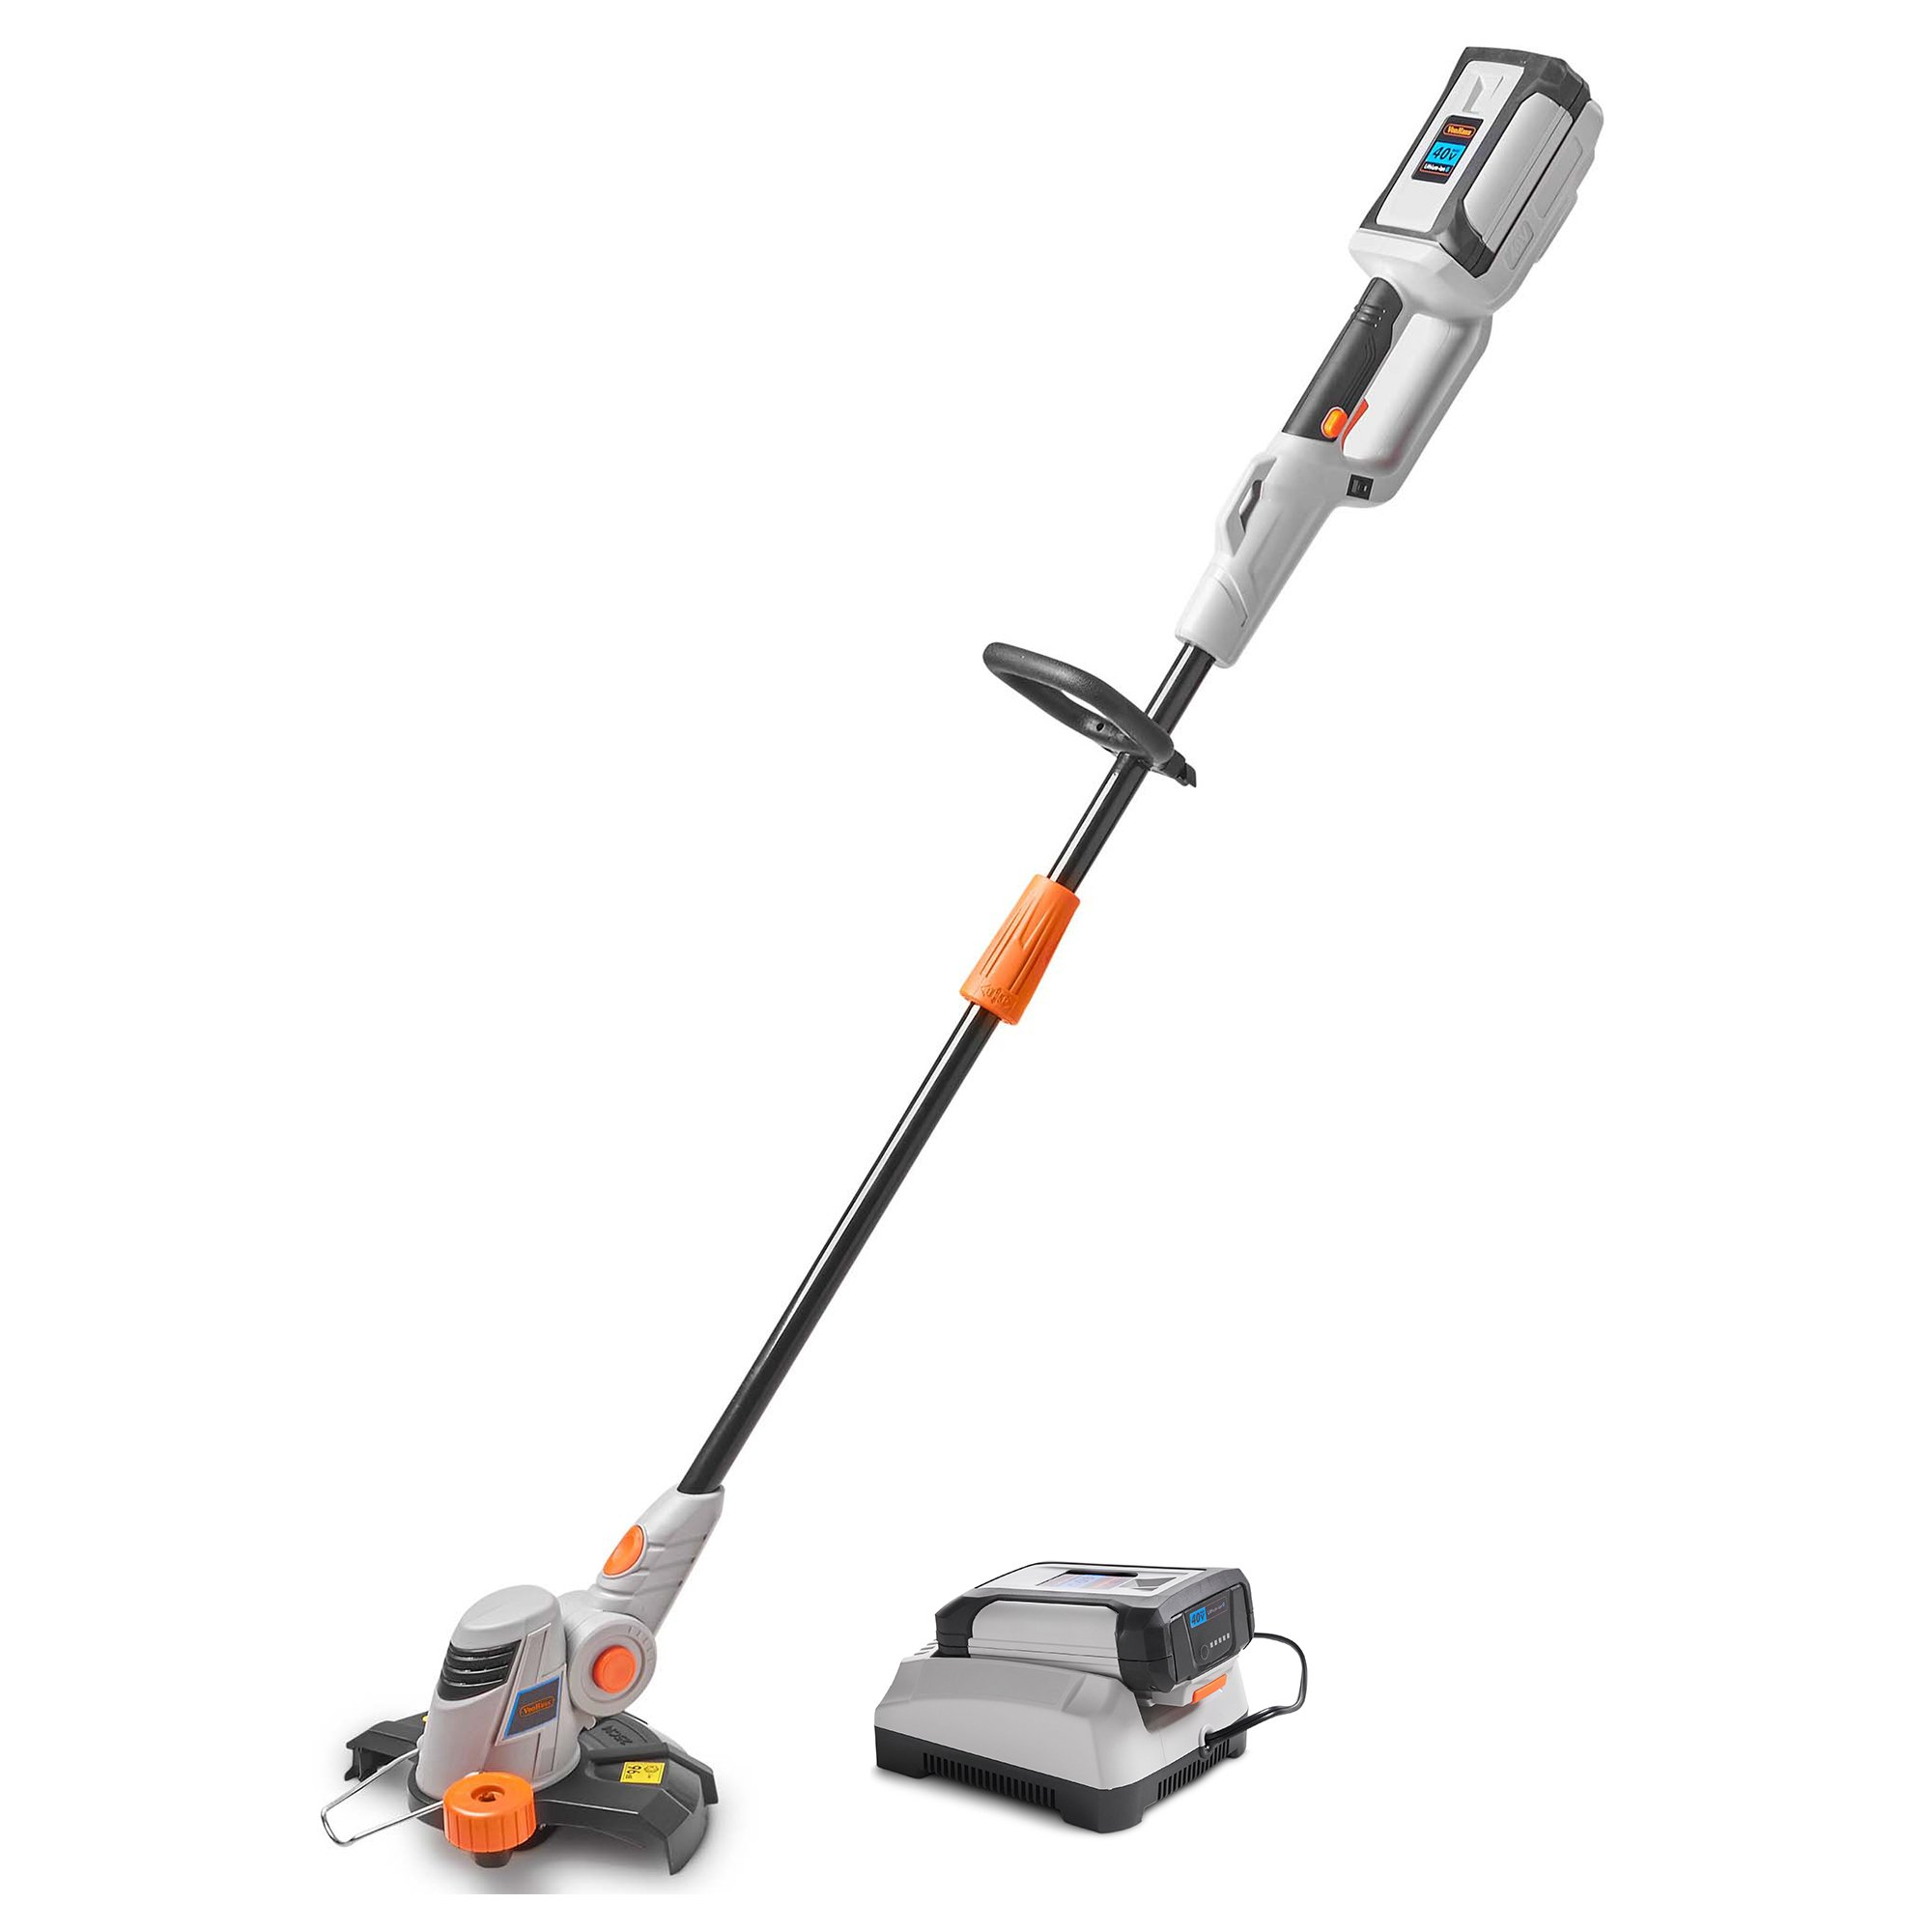 VonHaus 40V Max Cordless Easy Feed String Trimmer/Edger with Angle Adjustment and Head Rotation 2.0Ah Lithium-ion Battery and Charger